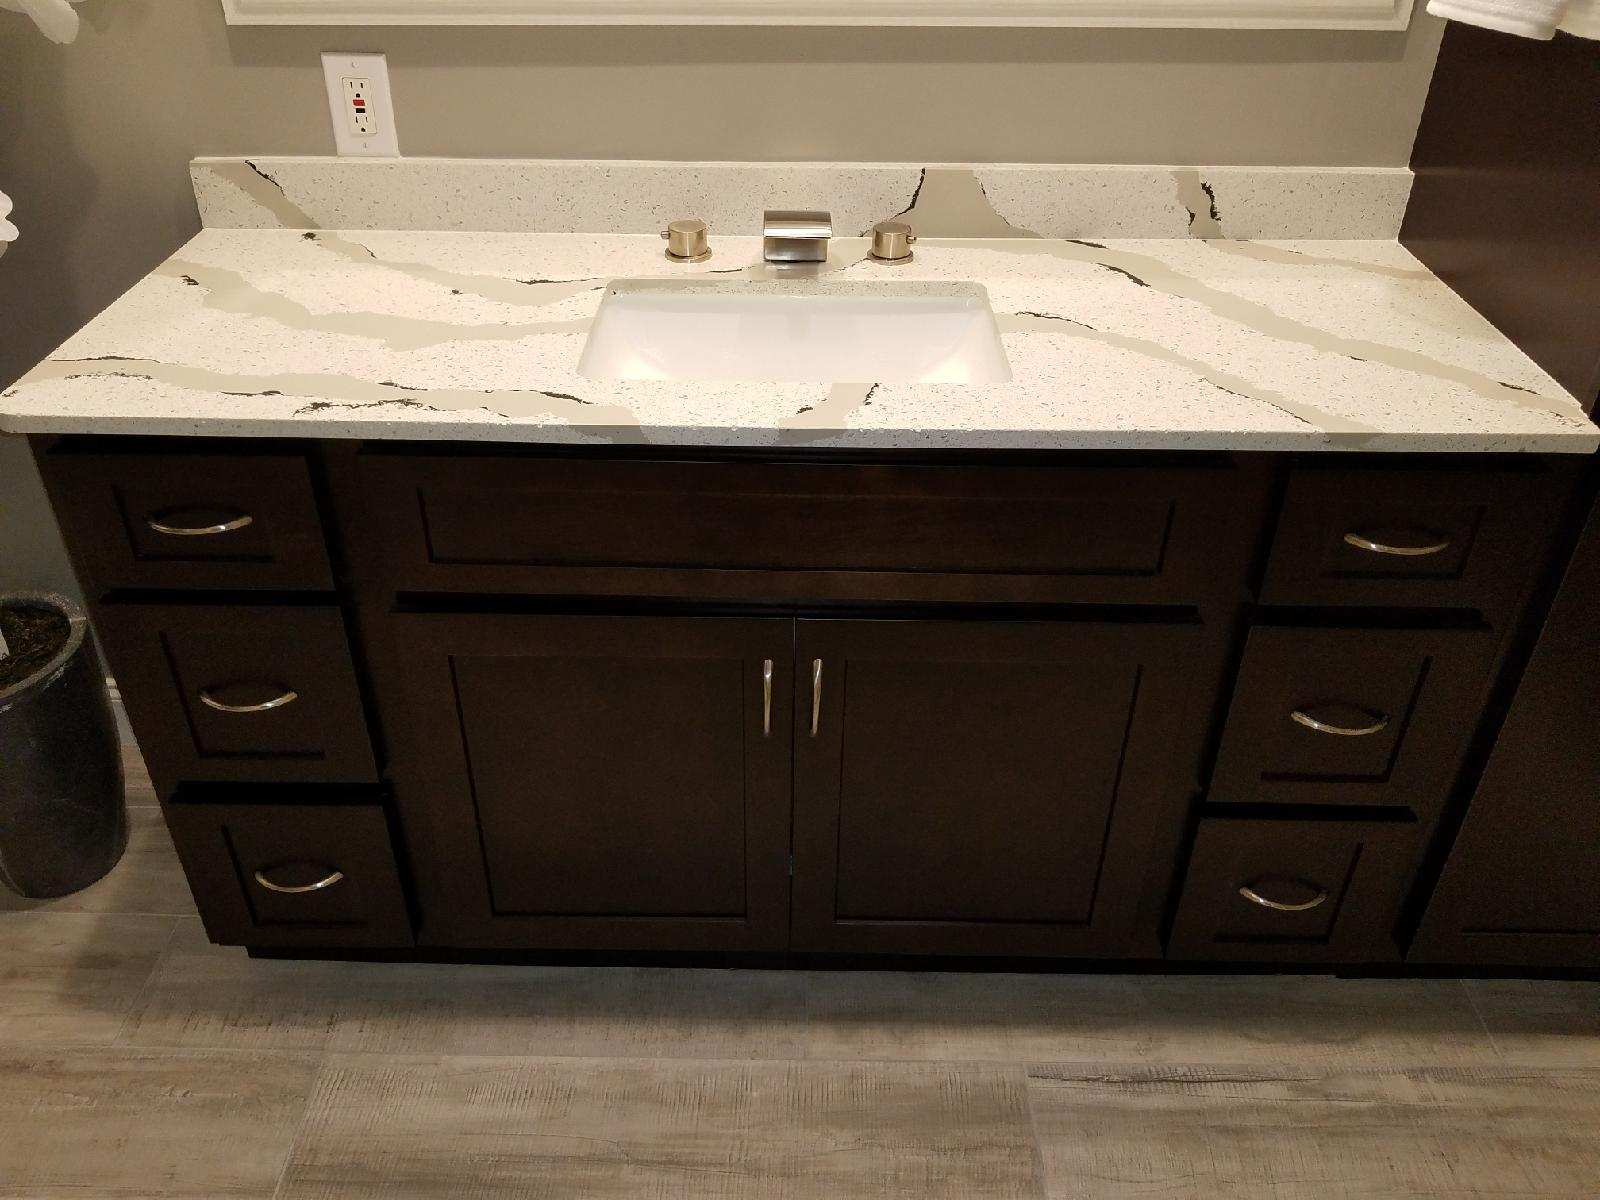 Quartz & Recycled Glass Countertops